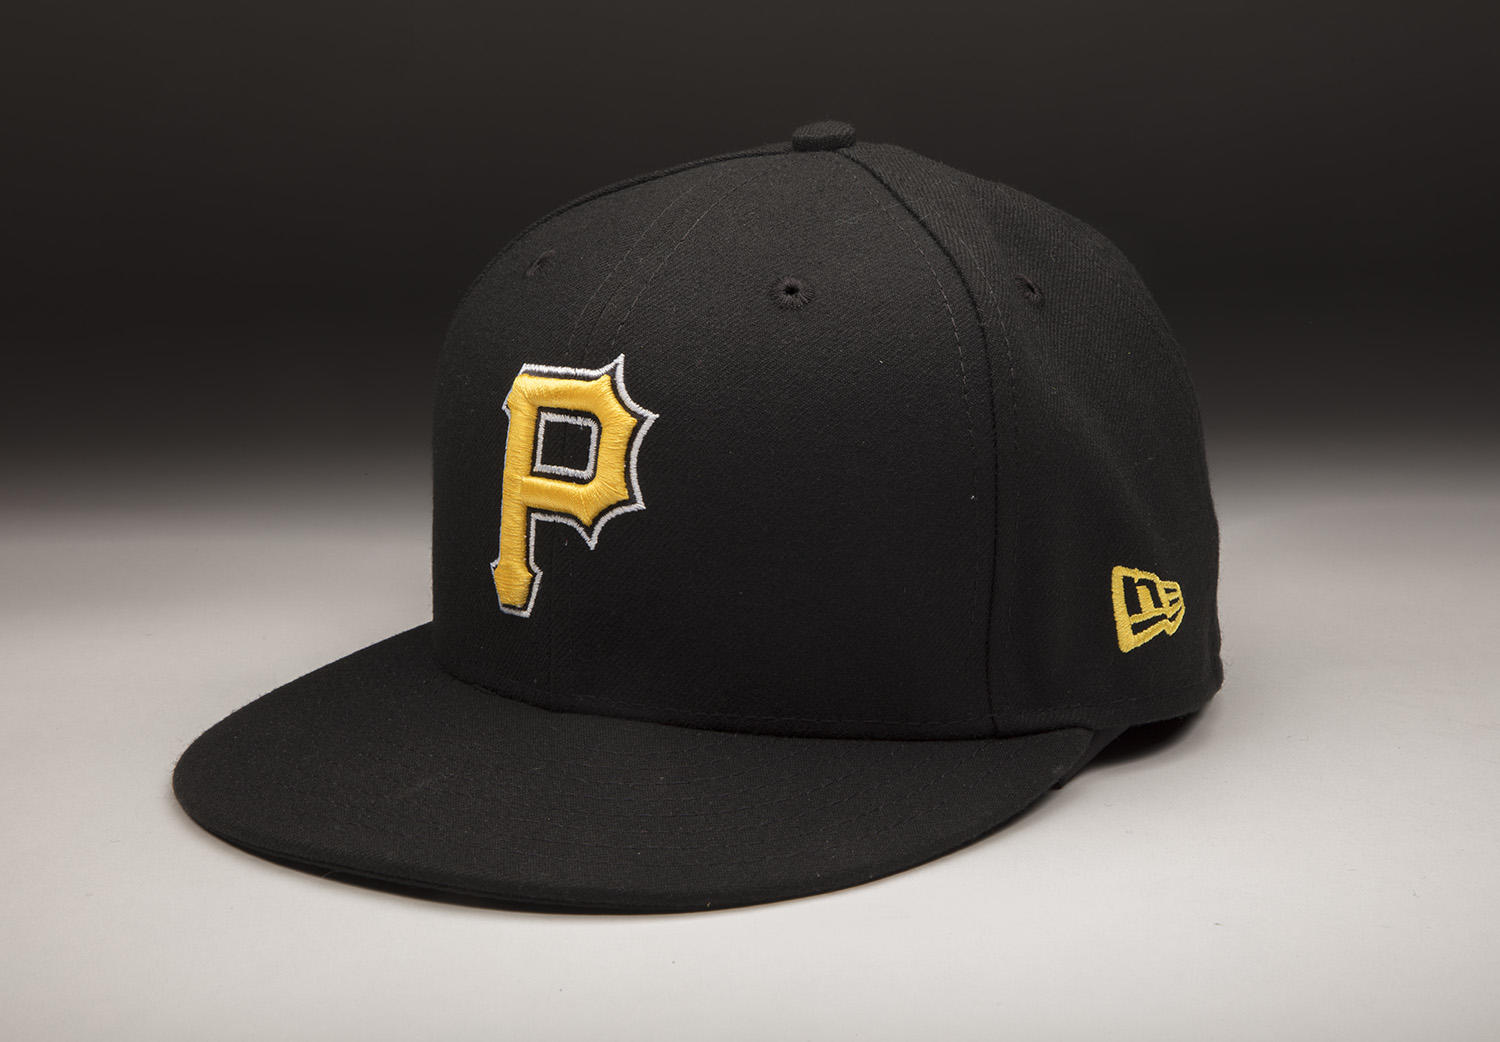 """Dovydas Neverauskas donated this cap to the Hall of Fame after his major league debut on April 24, 2017. <a href=""""http://collection.baseballhall.org/islandora/object/islandora%3A538856"""">PASTIME</a> (Milo Stewart Jr. / National Baseball Hall of Fame and Museum)"""